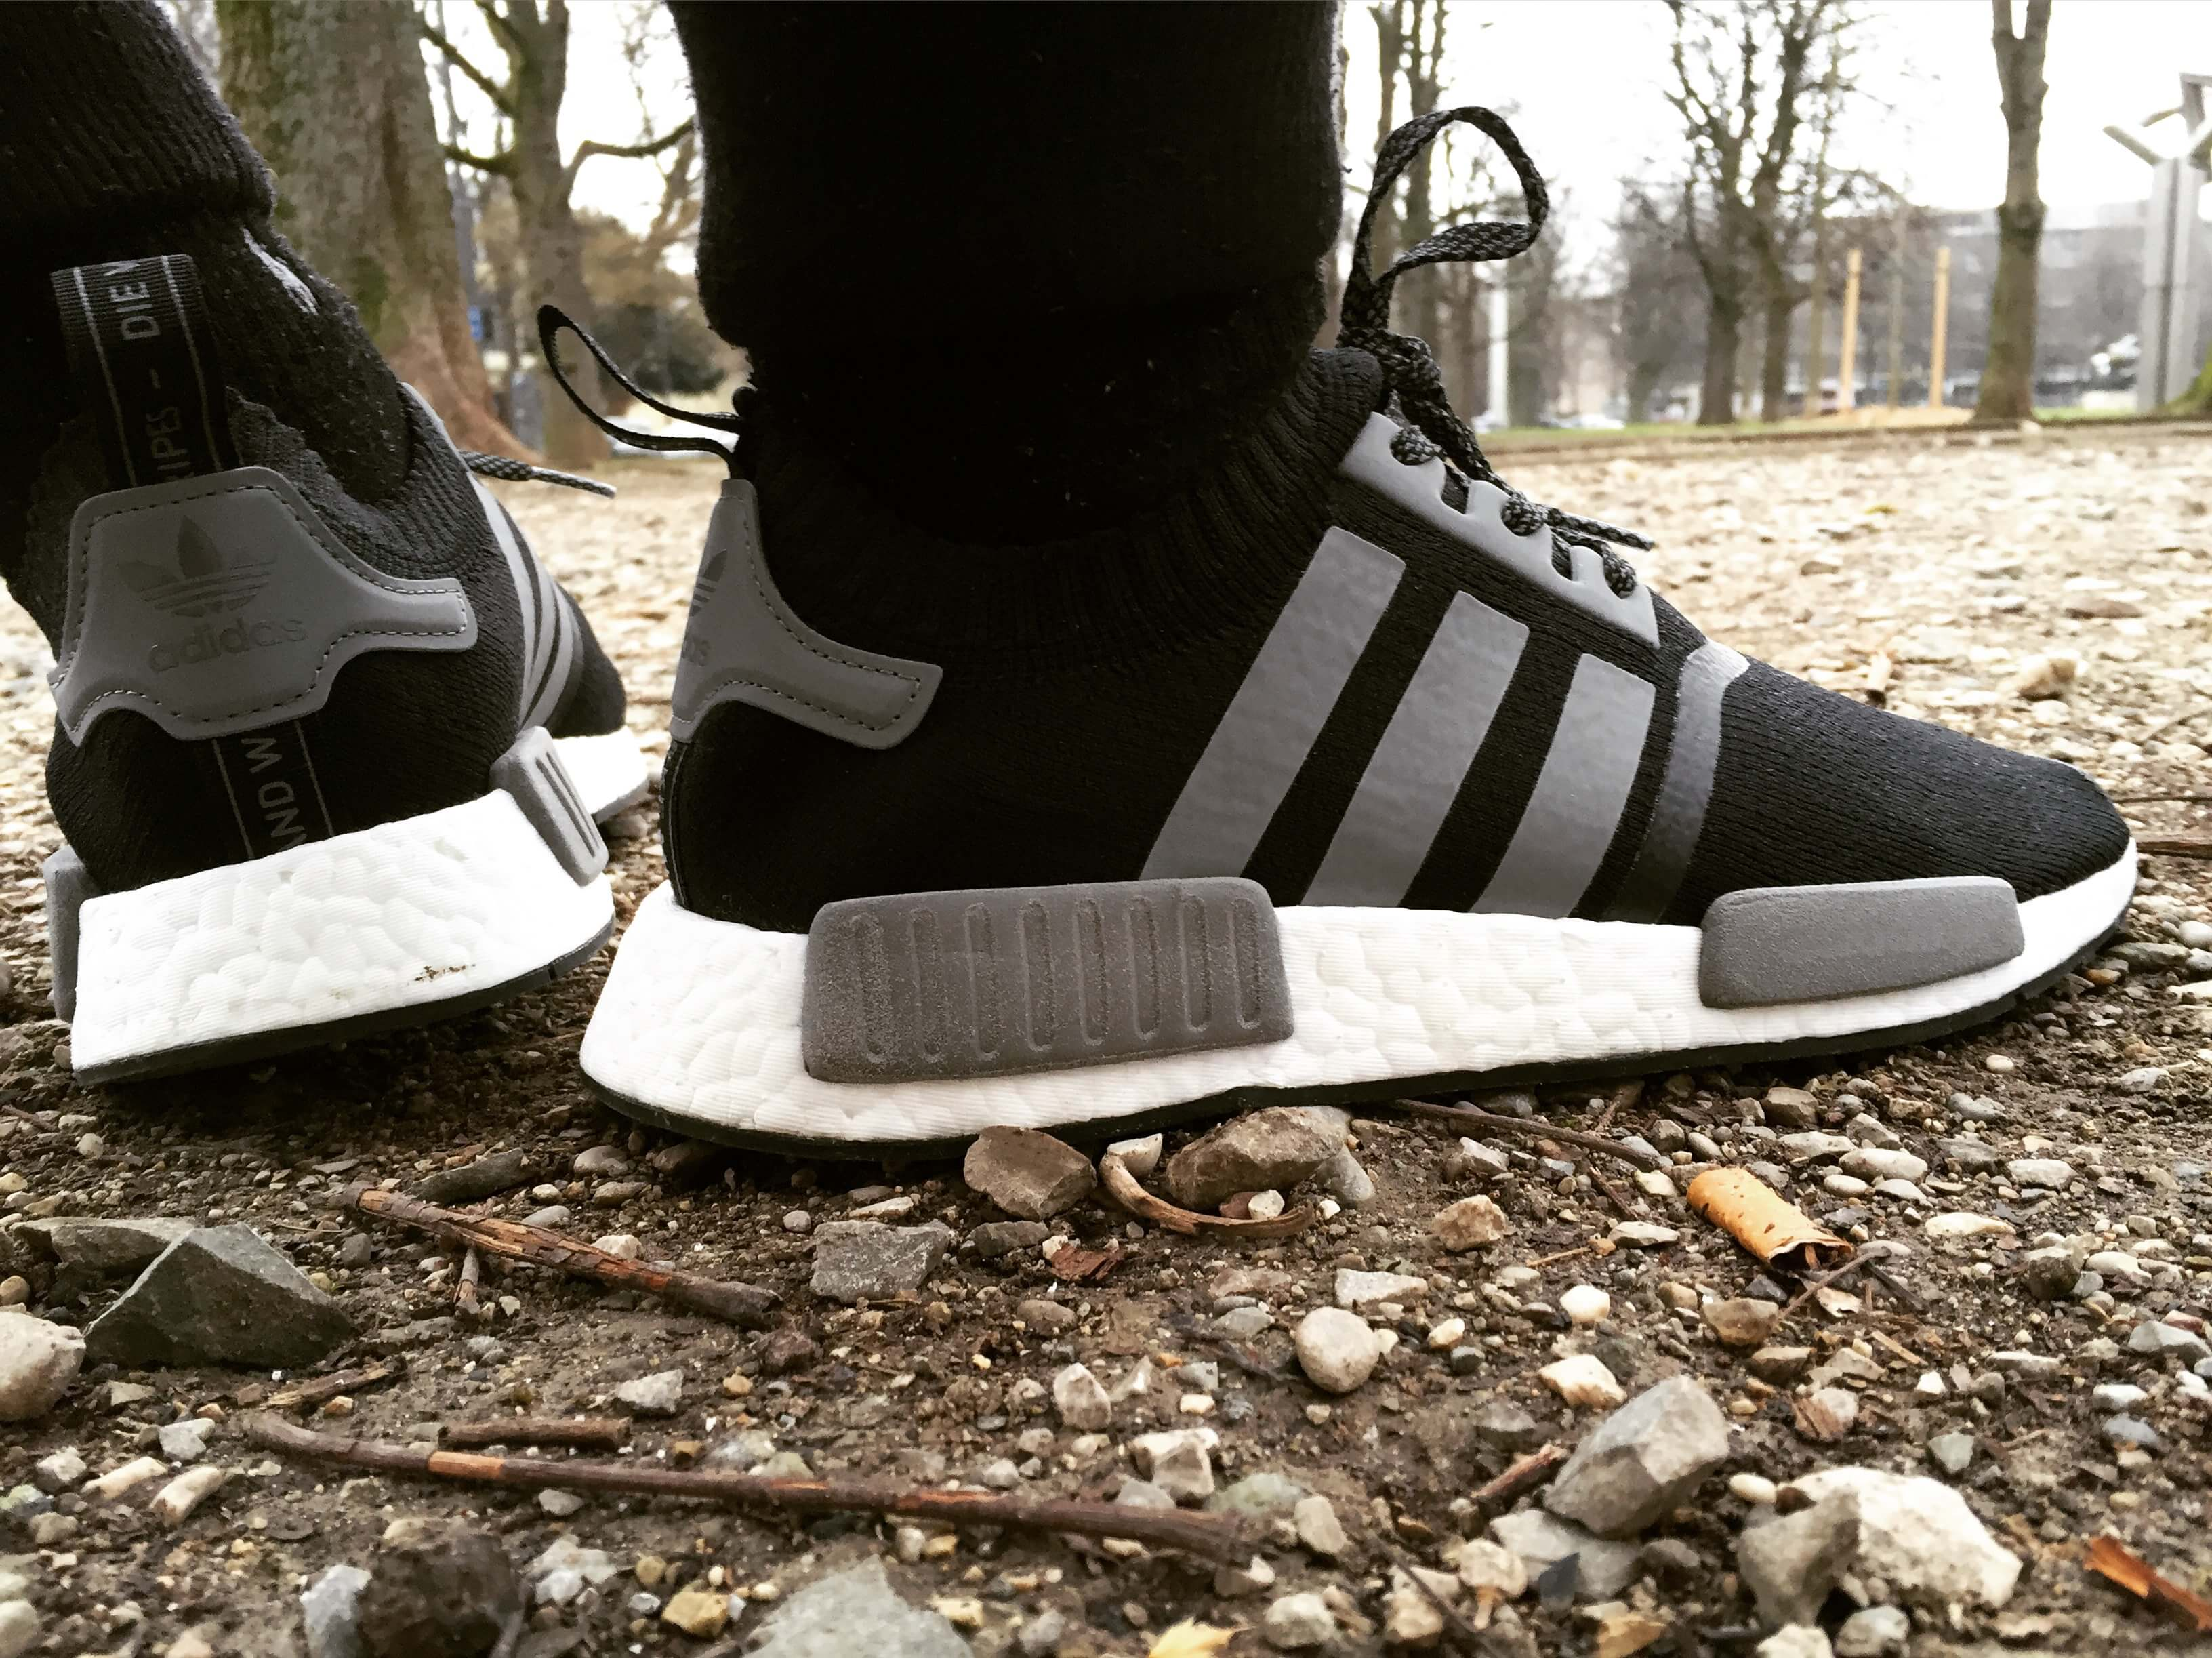 Adidas-NMD-Key-City-Activation-Rear-View-Benstah